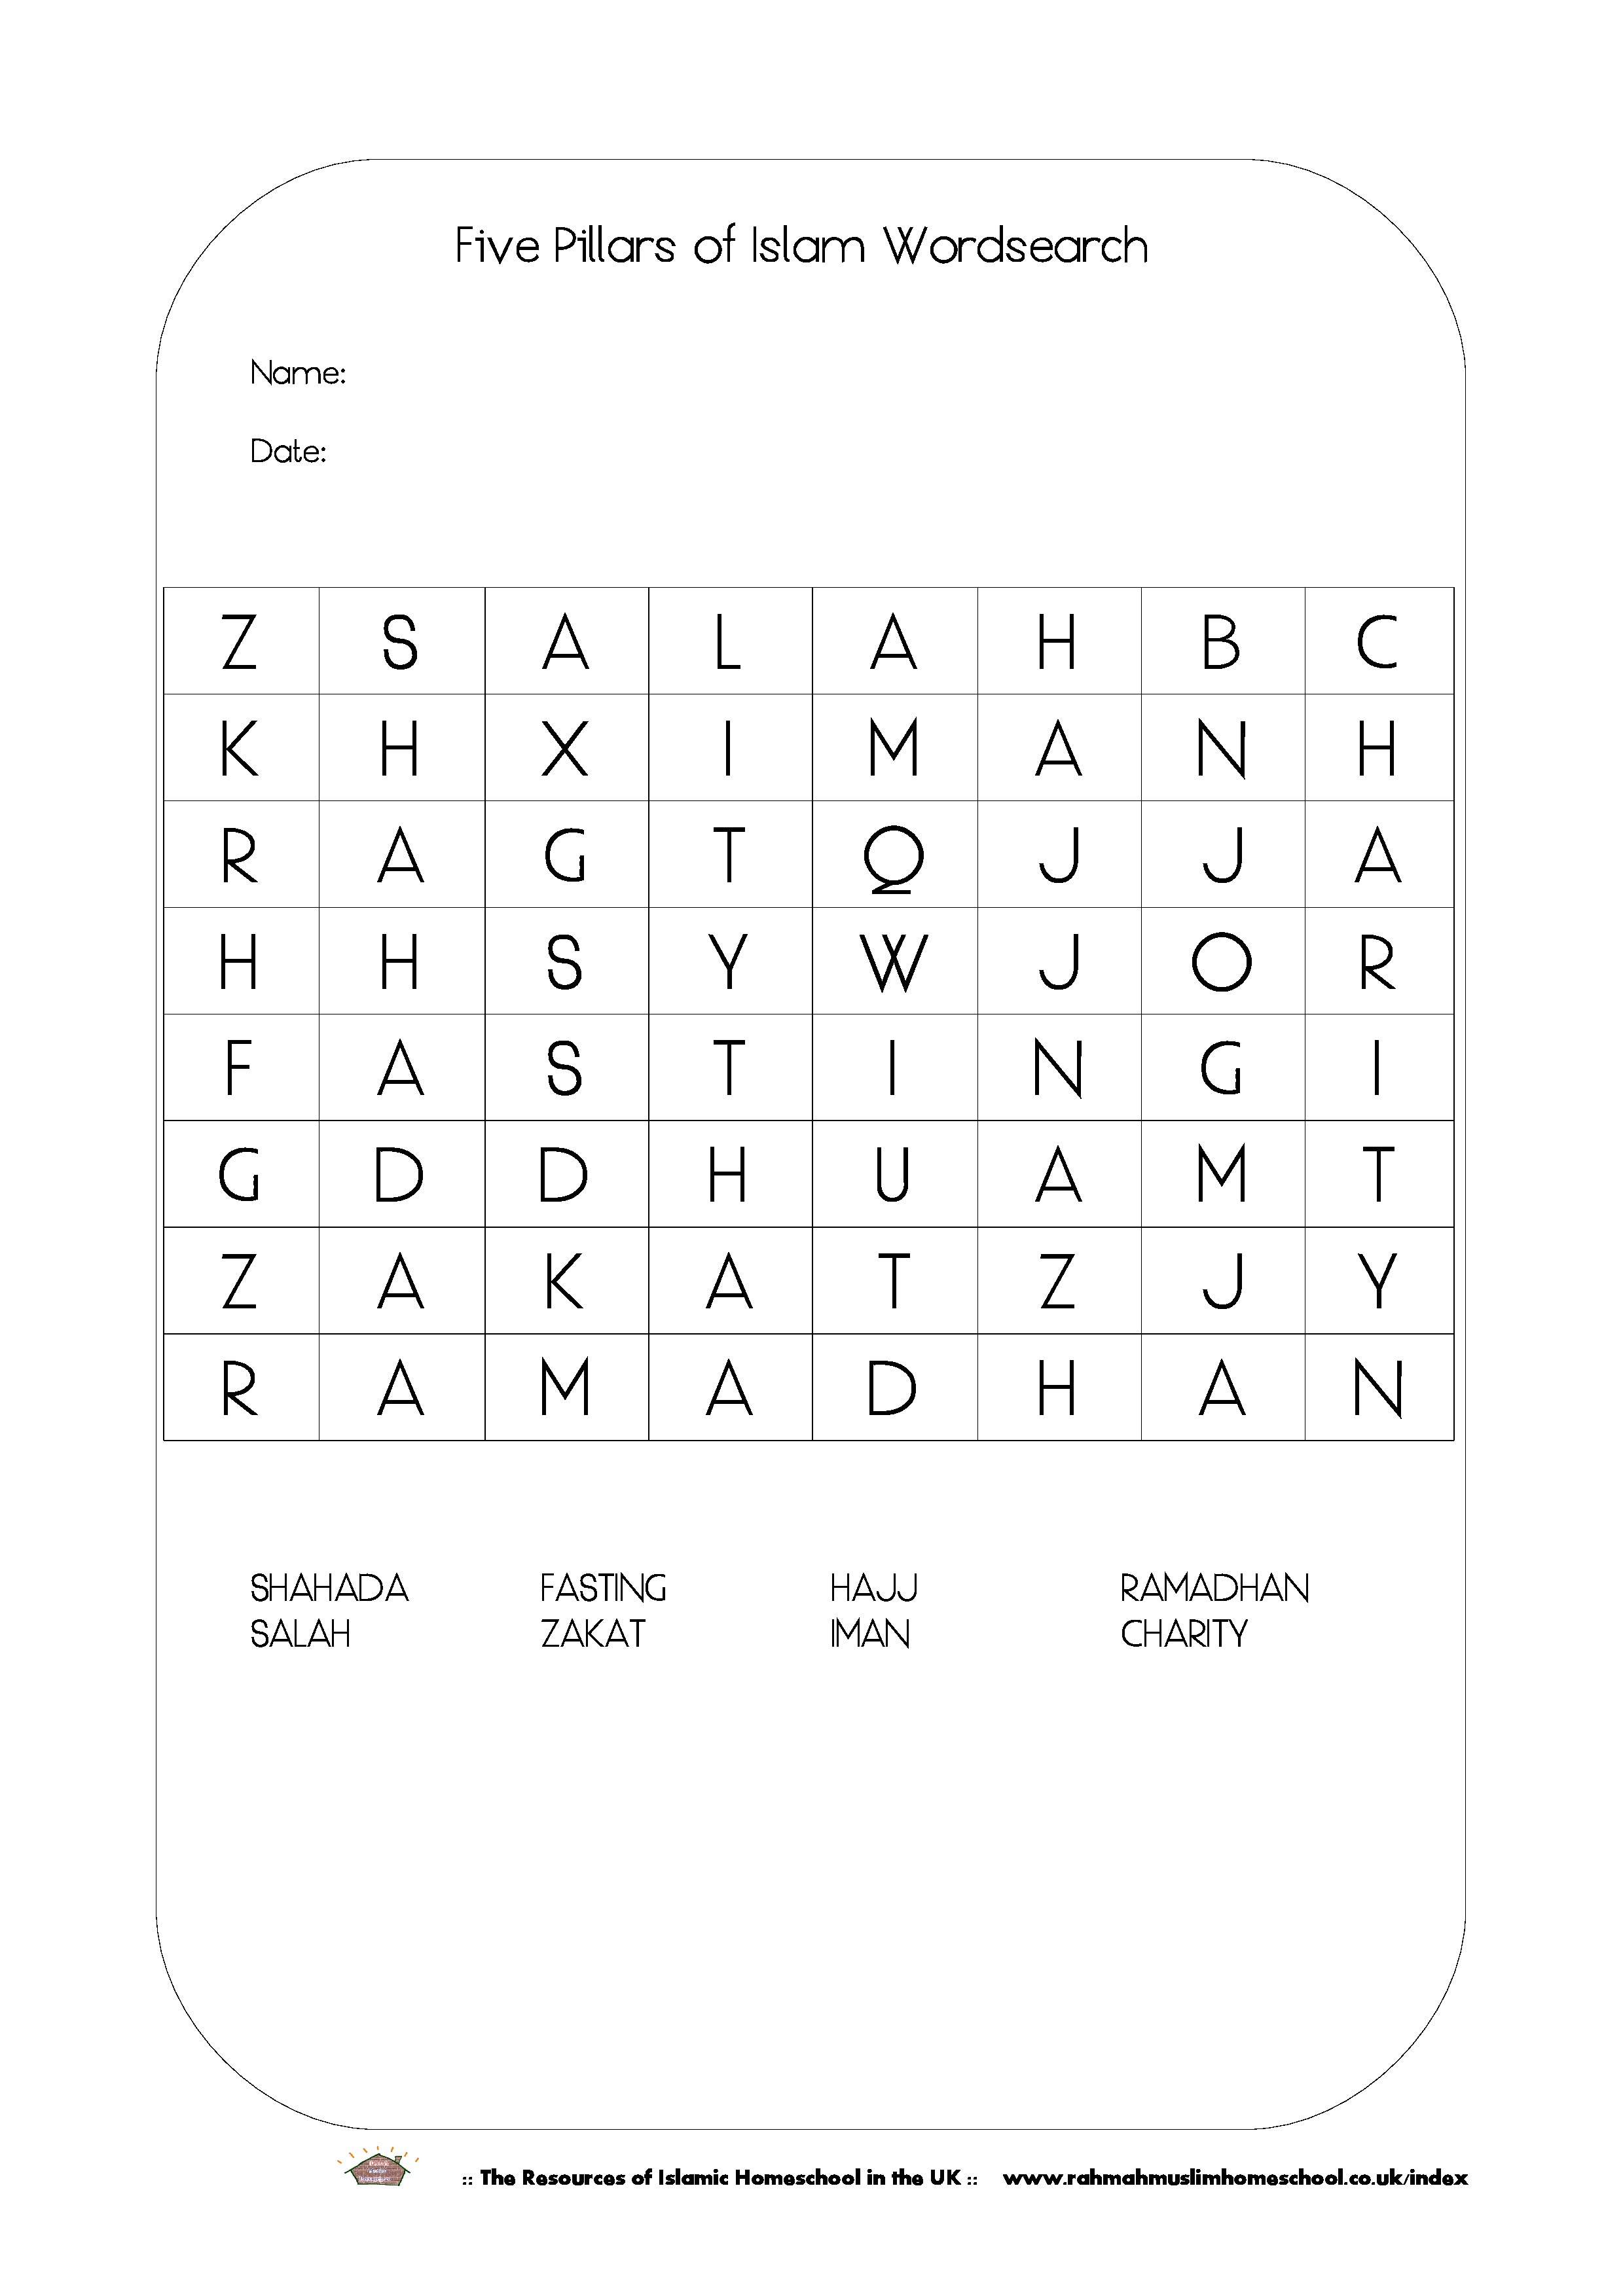 Free Ramadhan Activities; The Five Pillars Of Islam Wordsearch | The | Islamic Printable Worksheets